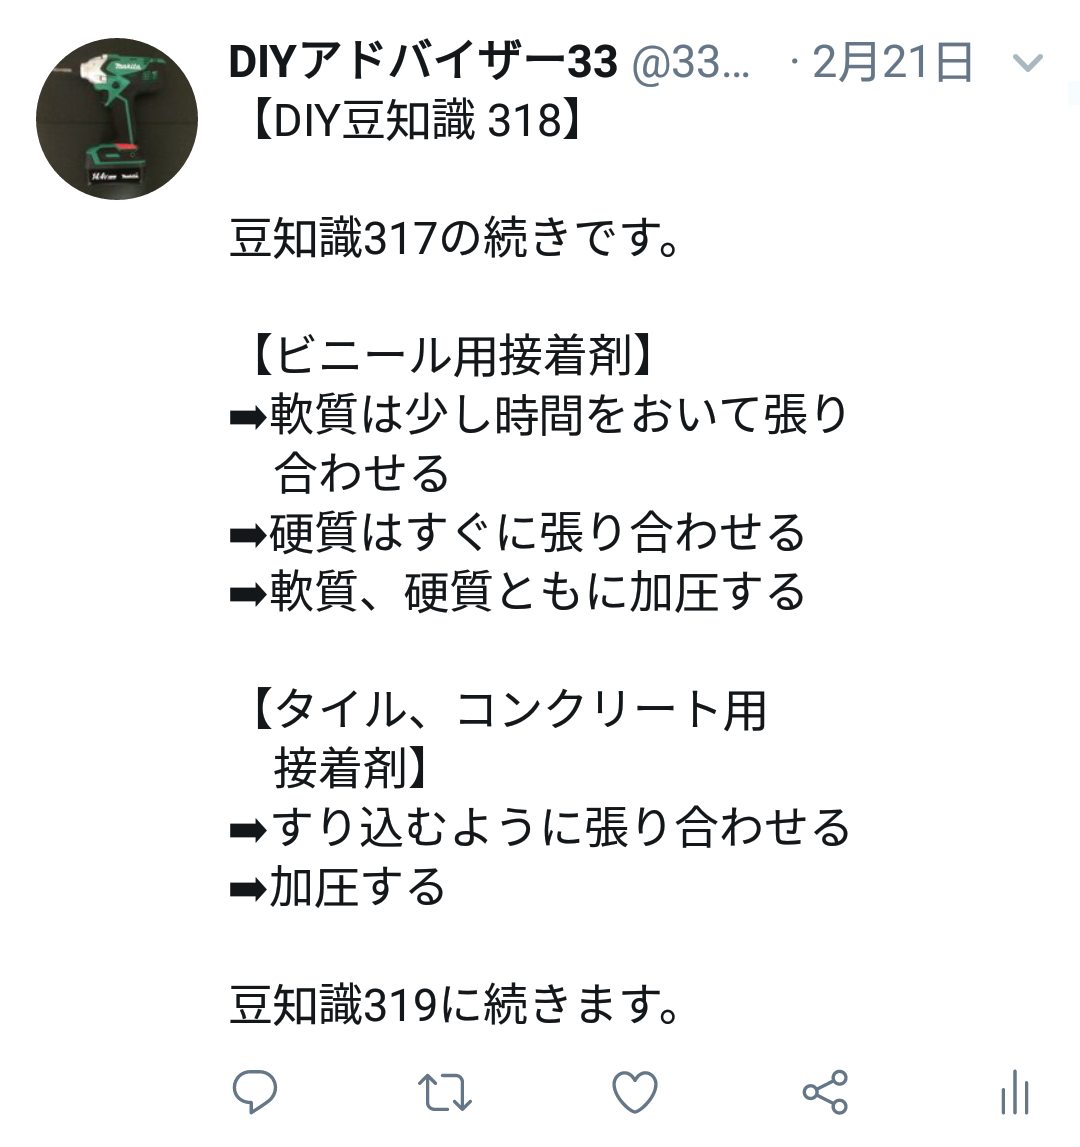 f:id:DIY33:20190409224540p:plain